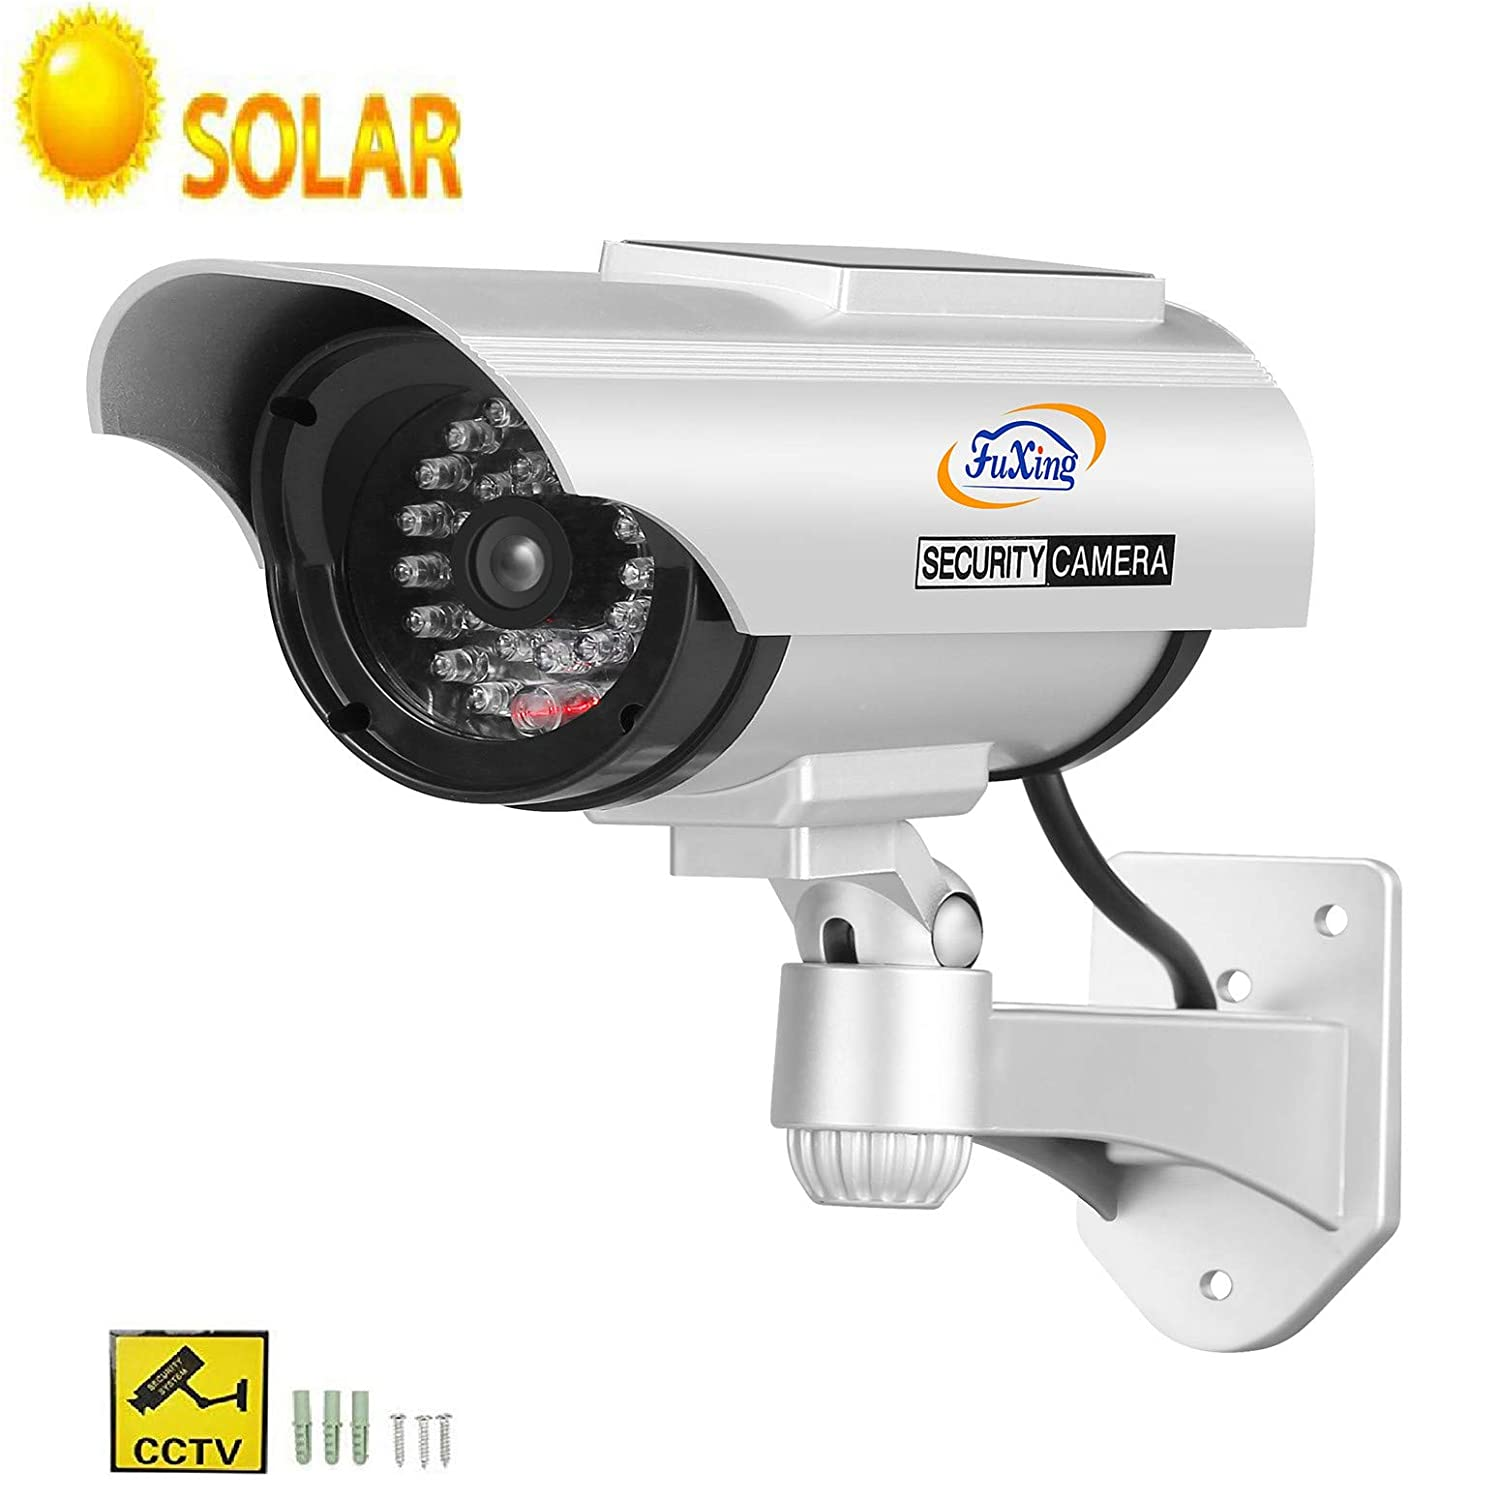 FX Solar Fake Dummy CCTV Security Surveillance Camera with Solar pannel for Blinking Red LED Light with CCTV Warning Signs Sticker JSXTTYNUSA